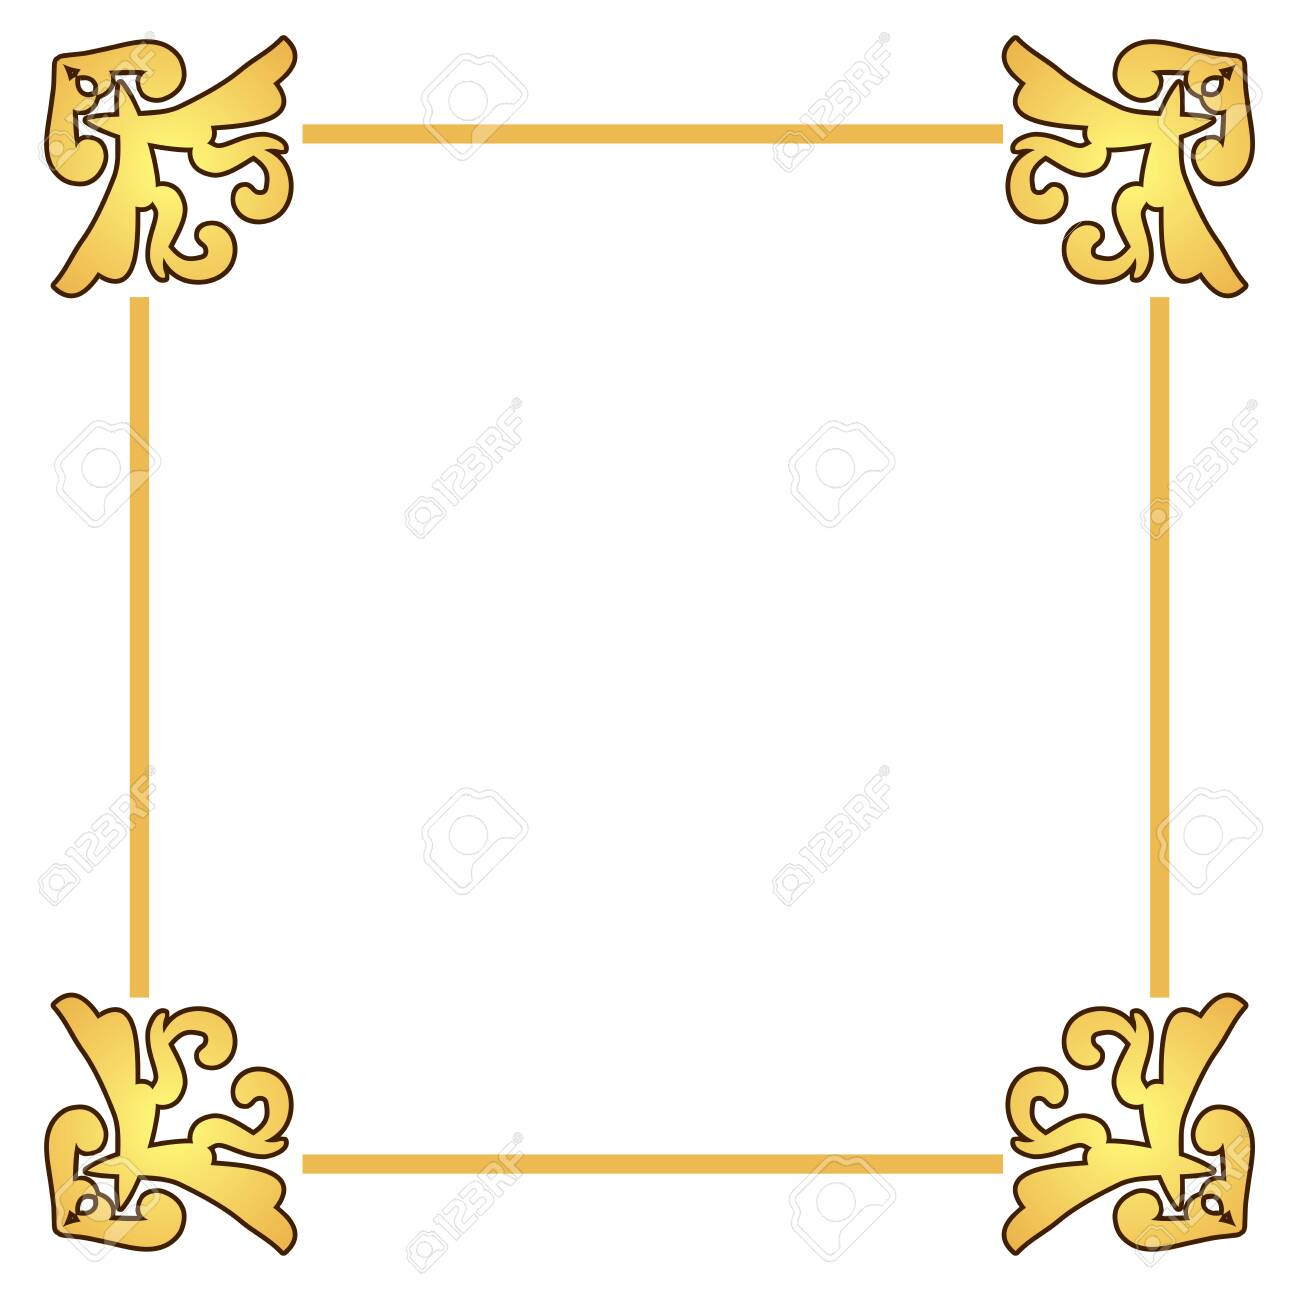 Beautiful frame in golden colors. - 130864047